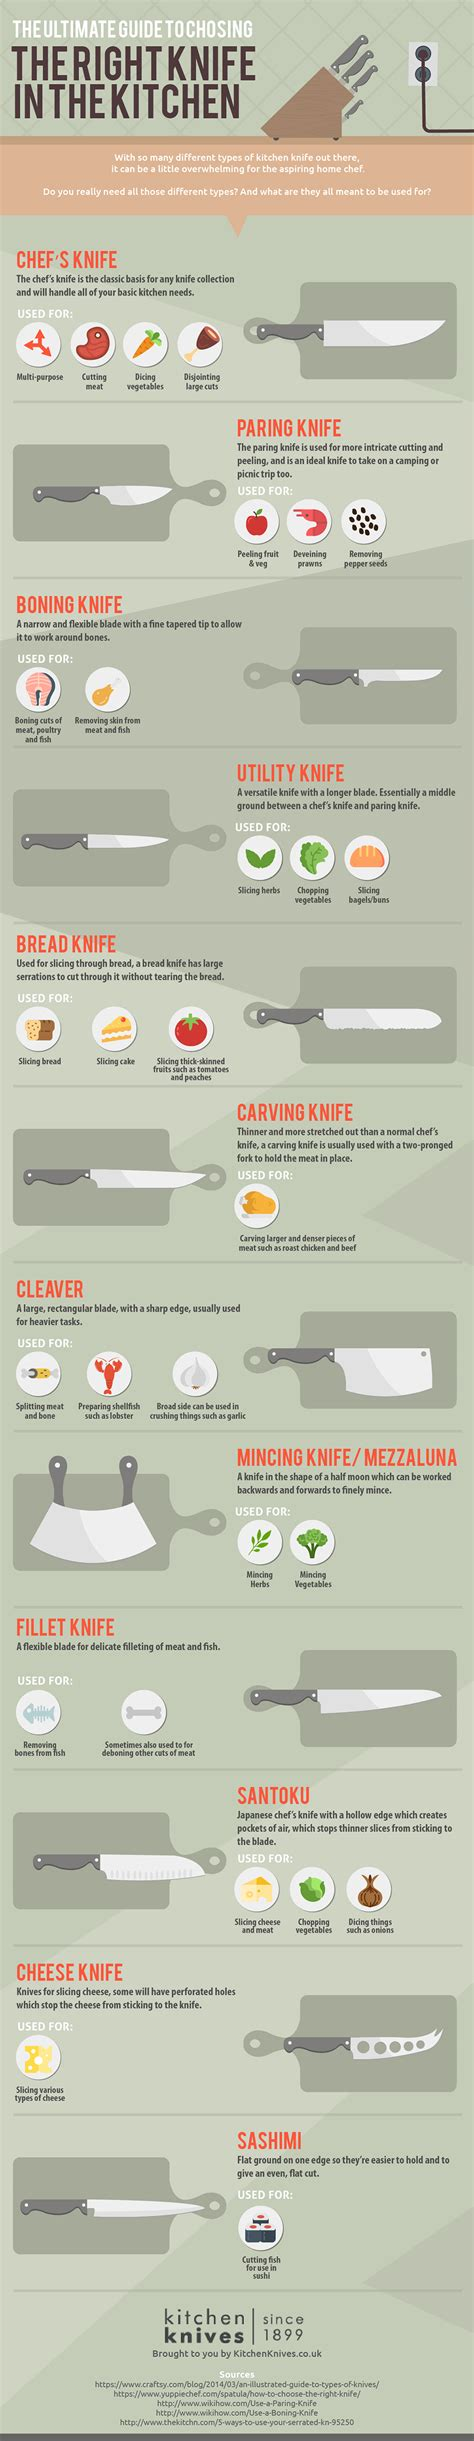 how to choose the right knife for the job simple bites how to choose the right knife in the kitchen biggies boxers